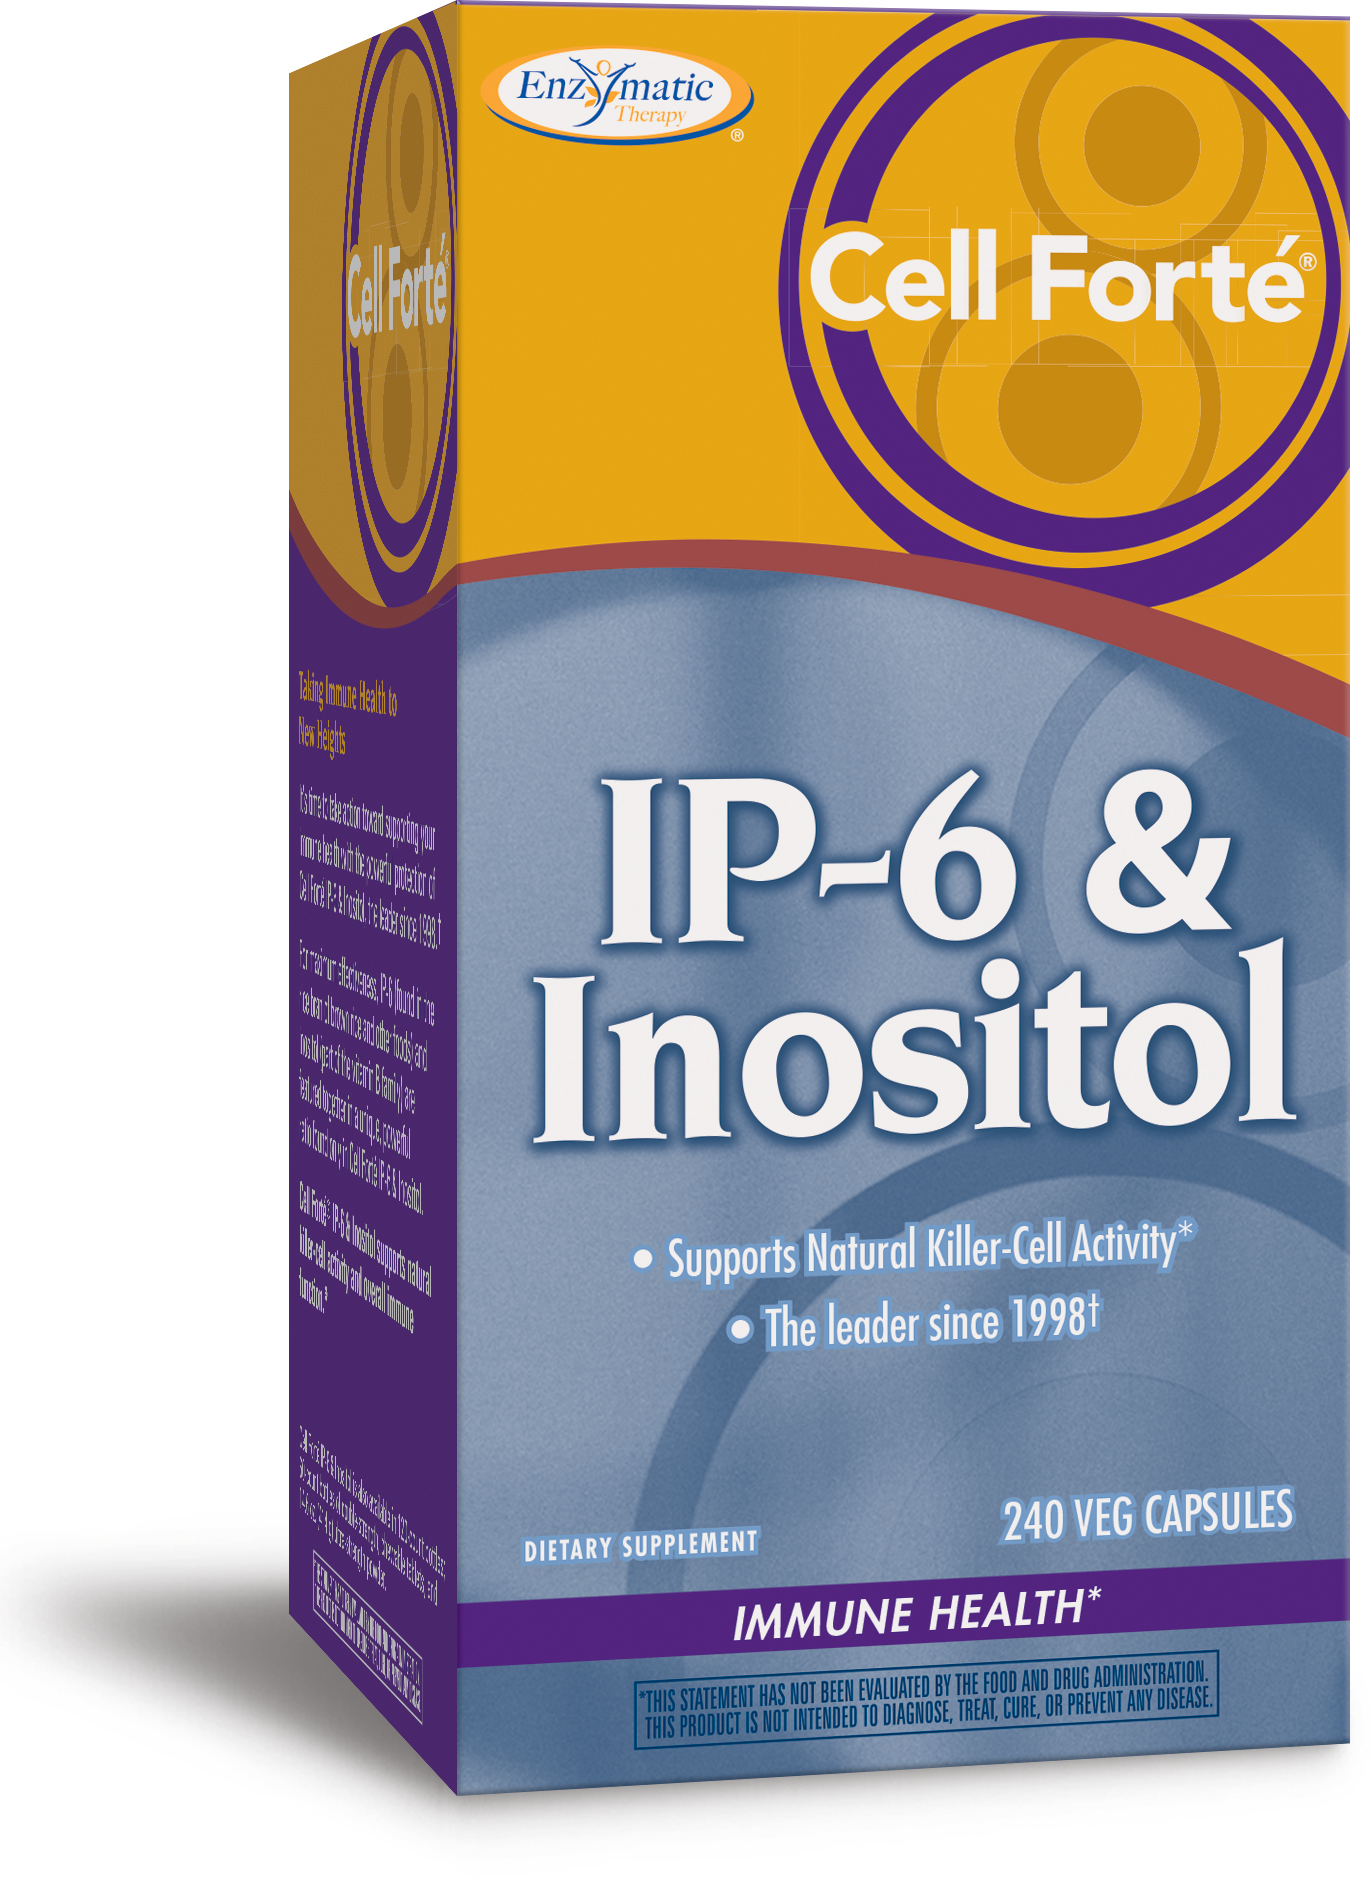 Cell Forte IP-6 & Inositol 240 Veg caps by Enzymatic Therapy